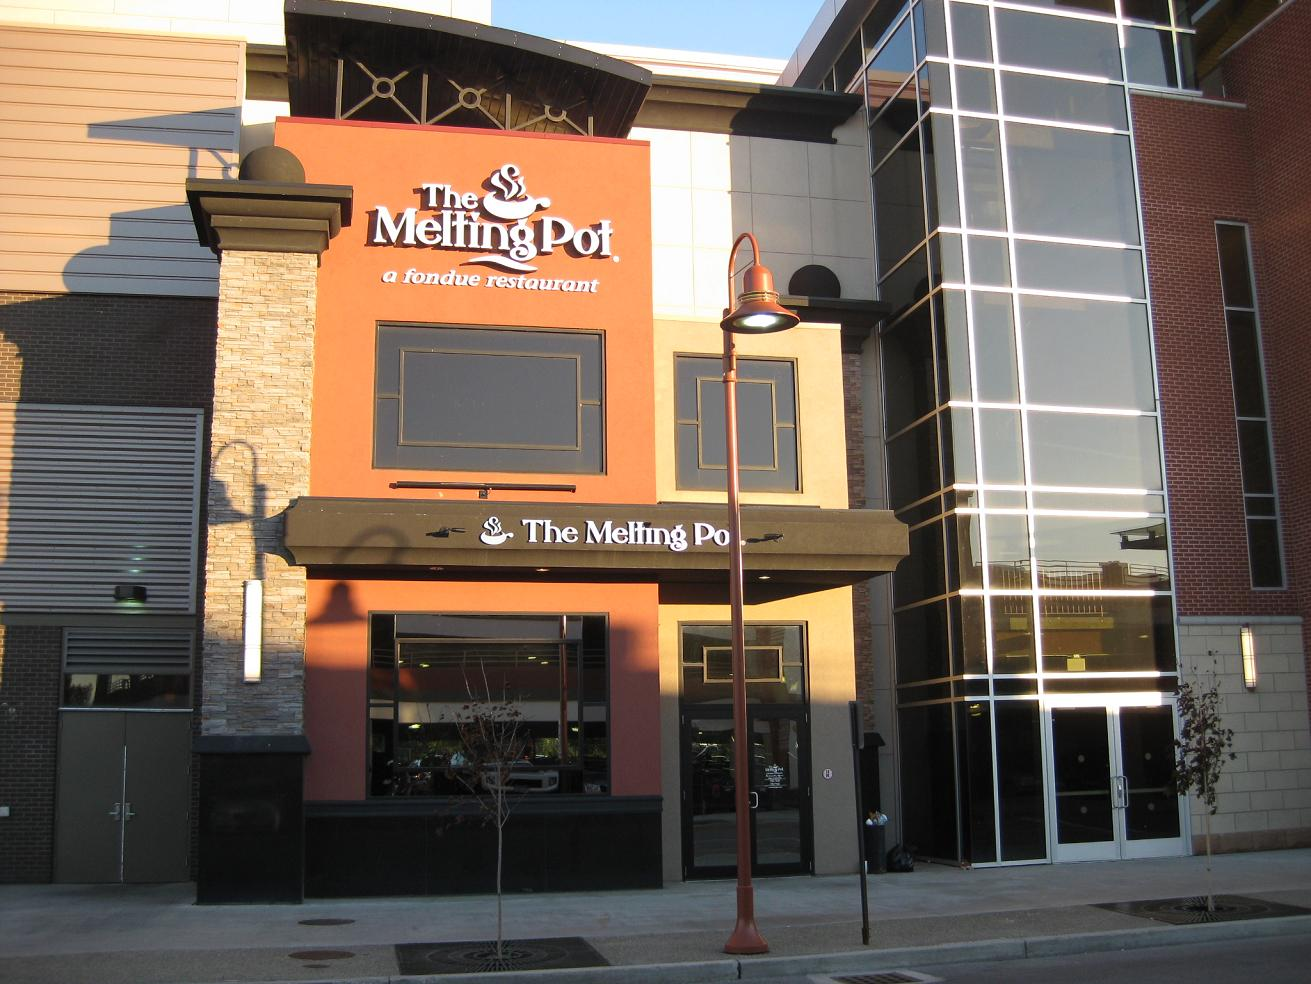 Melting pot galleria